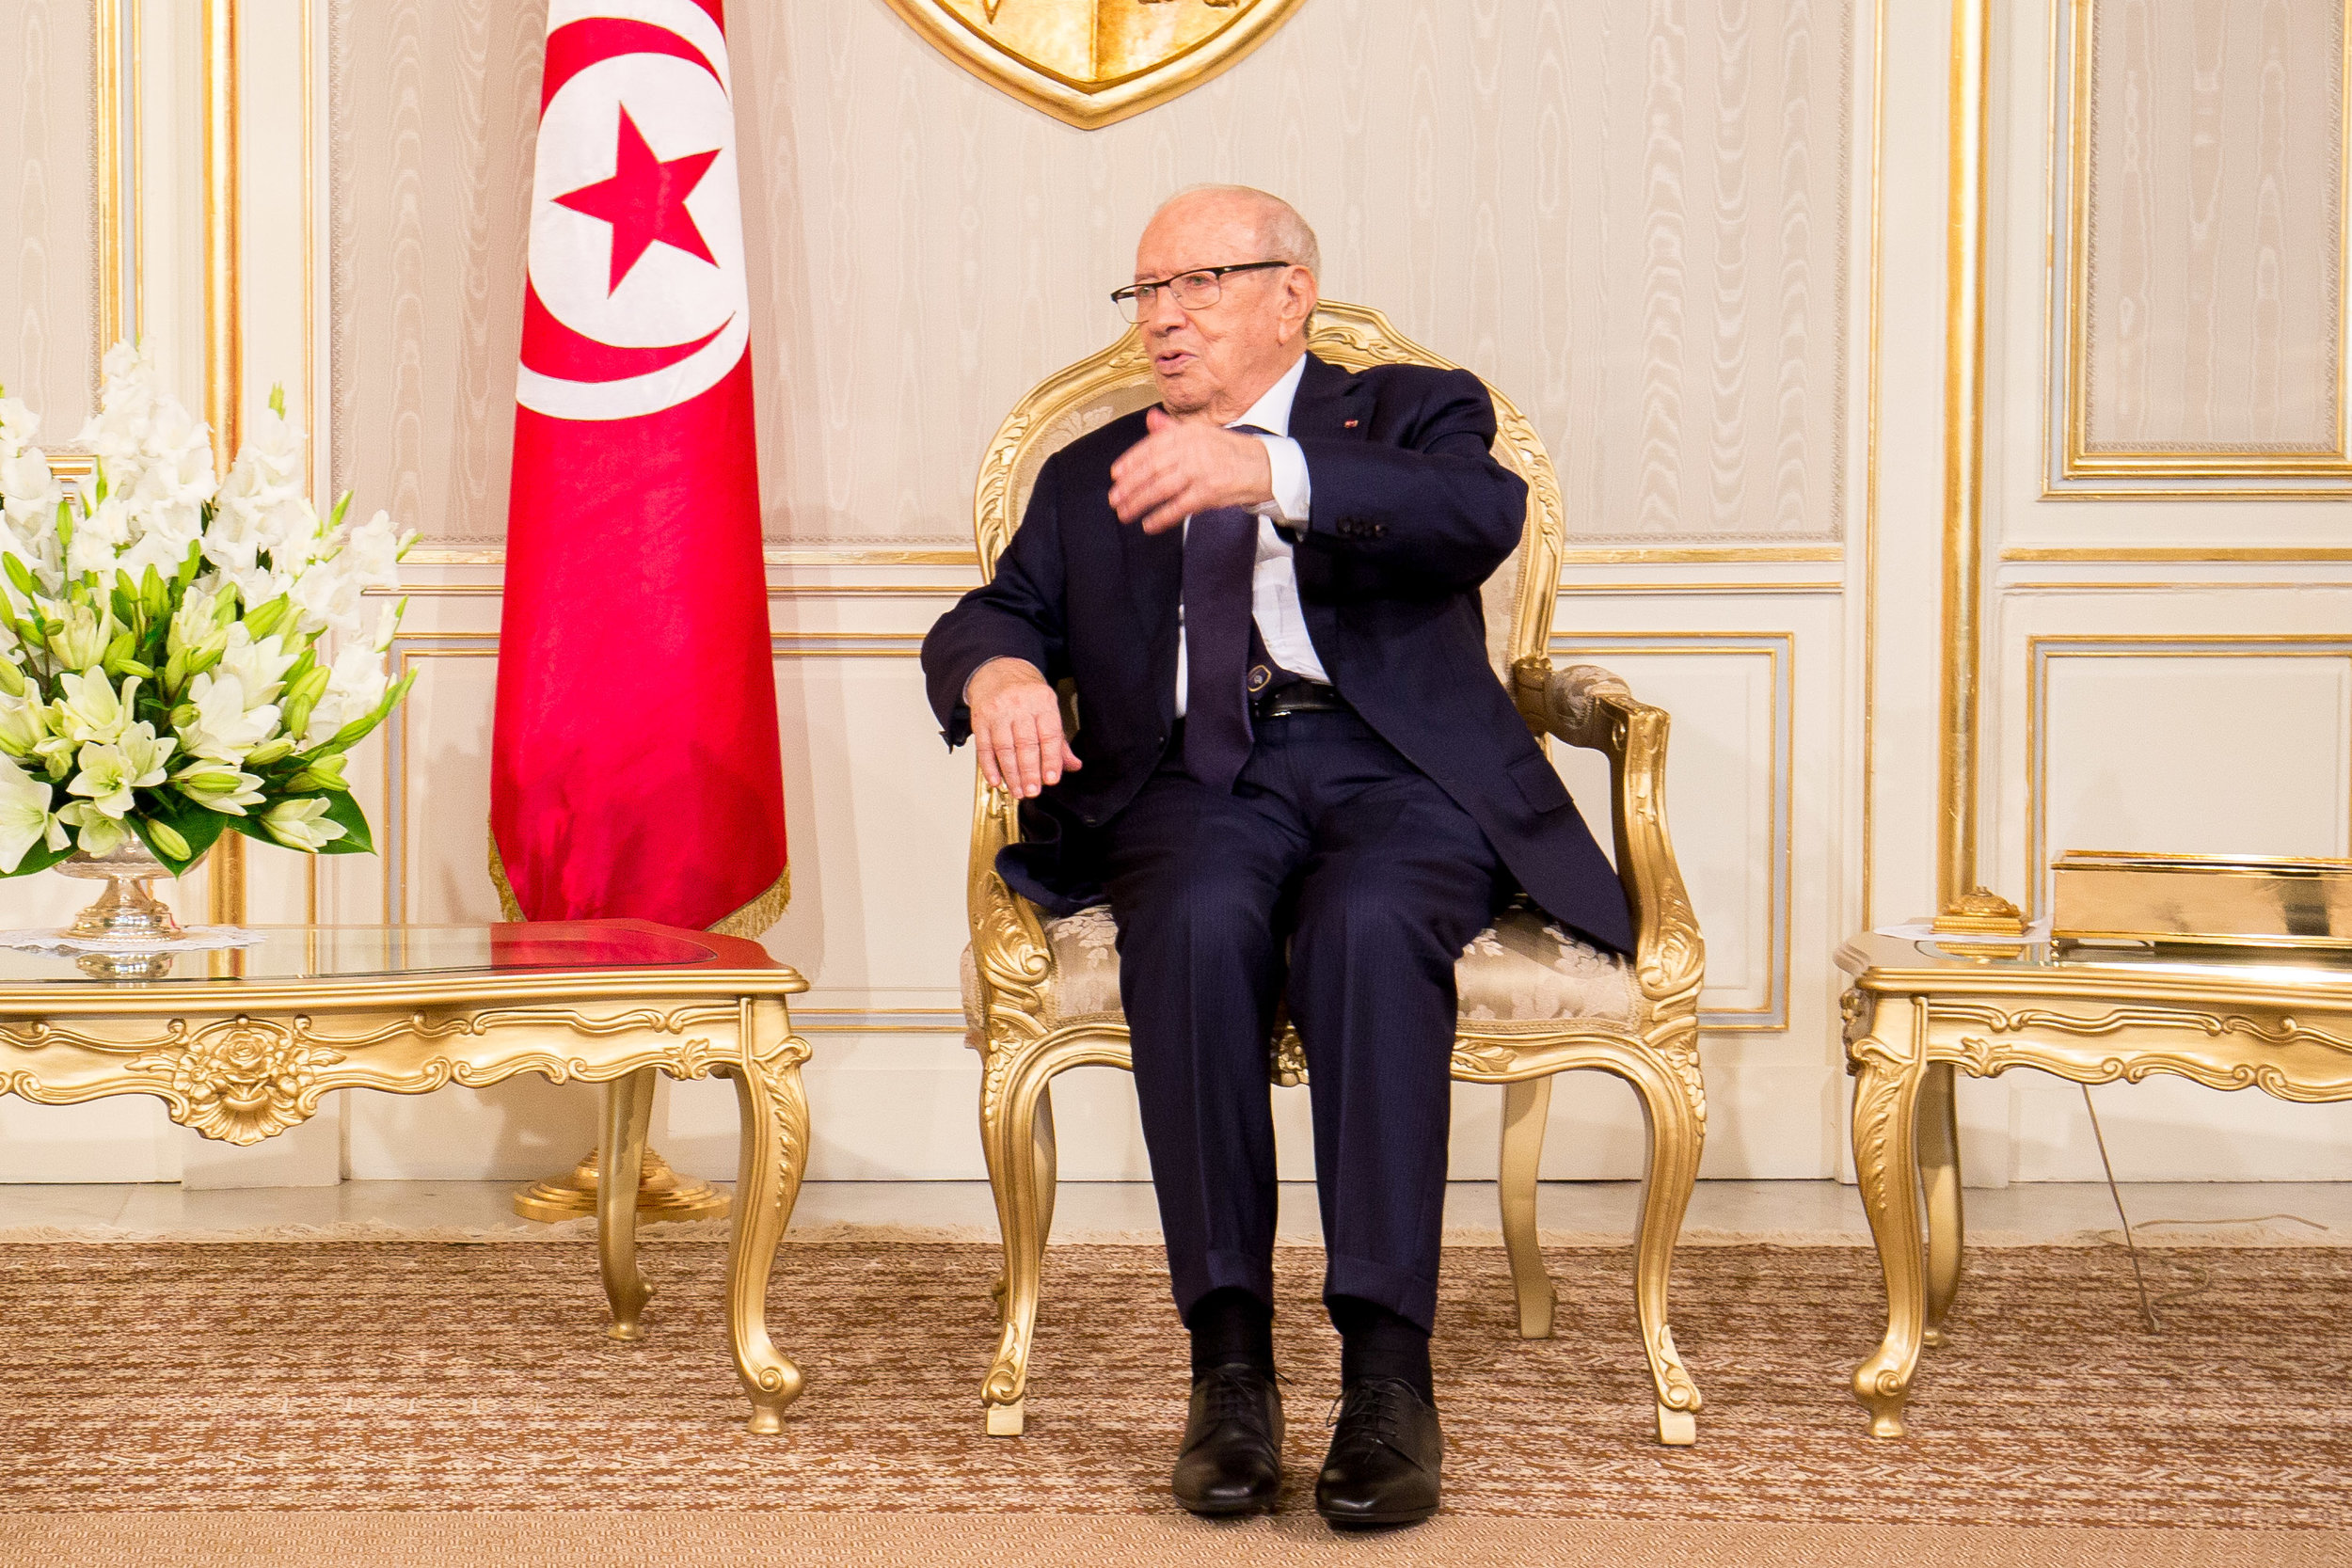 The late Beji Caïd Essebsi, Tunisian president who died at the age of 92. | Credit:  ITU Pictures